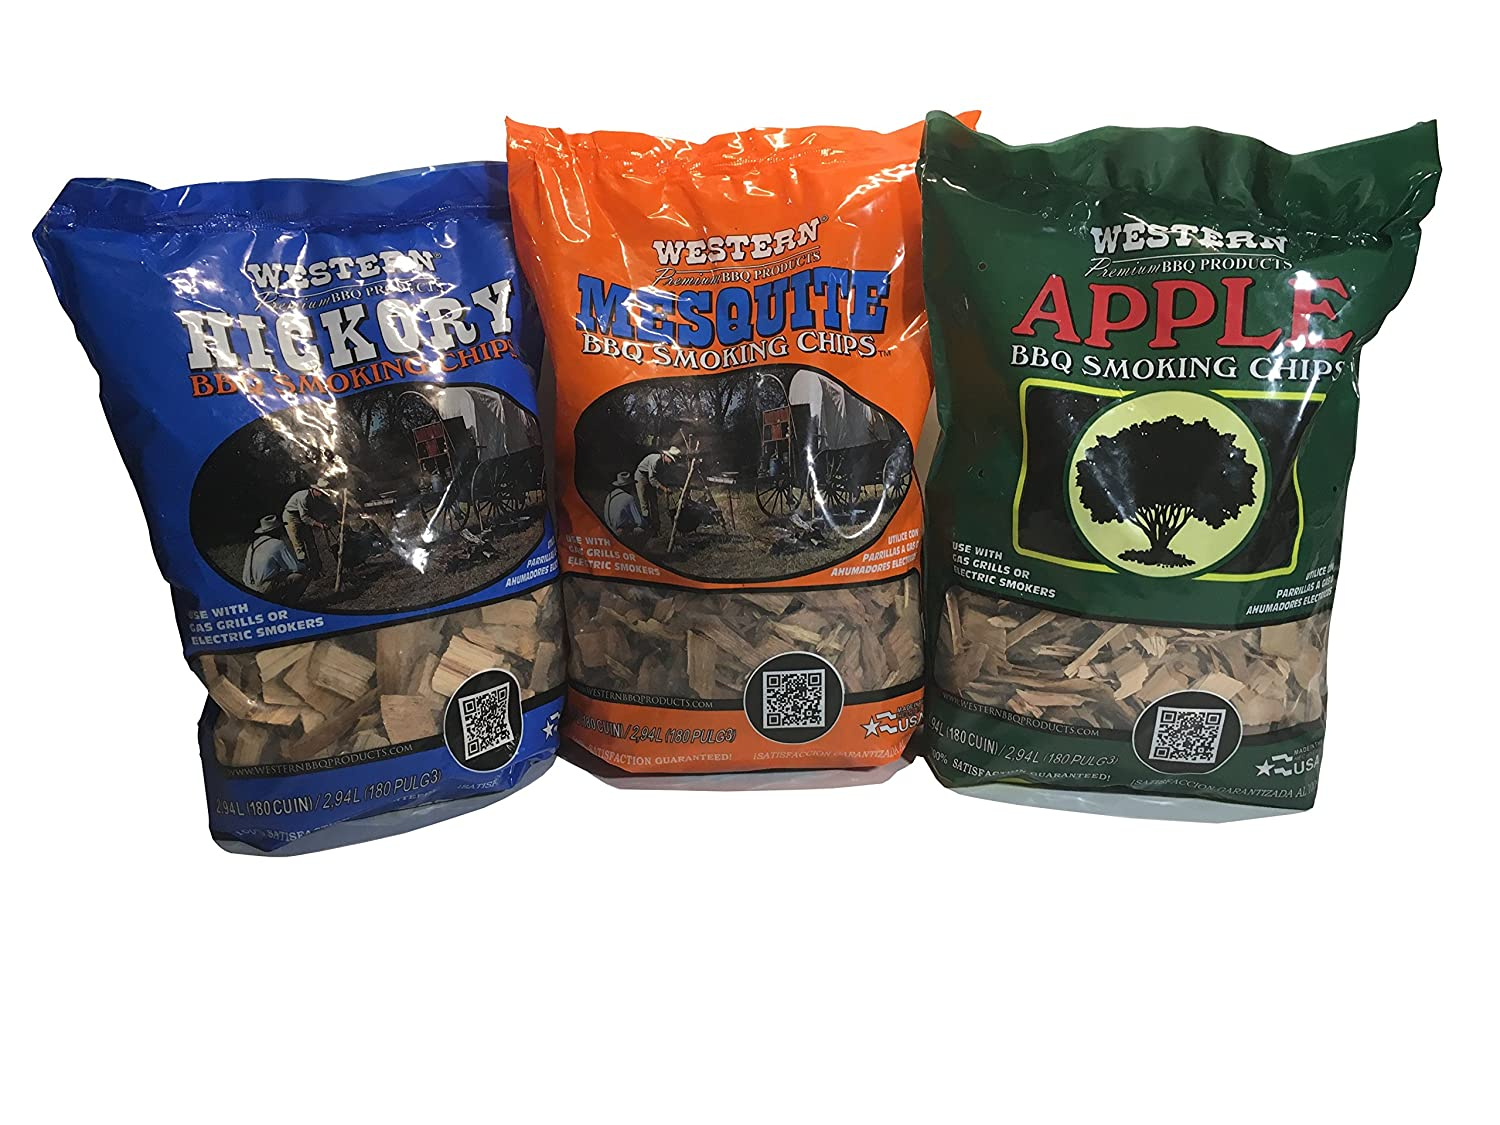 Western Smoking Wood Chips Bundle - Hickory, Mesquite, Apple